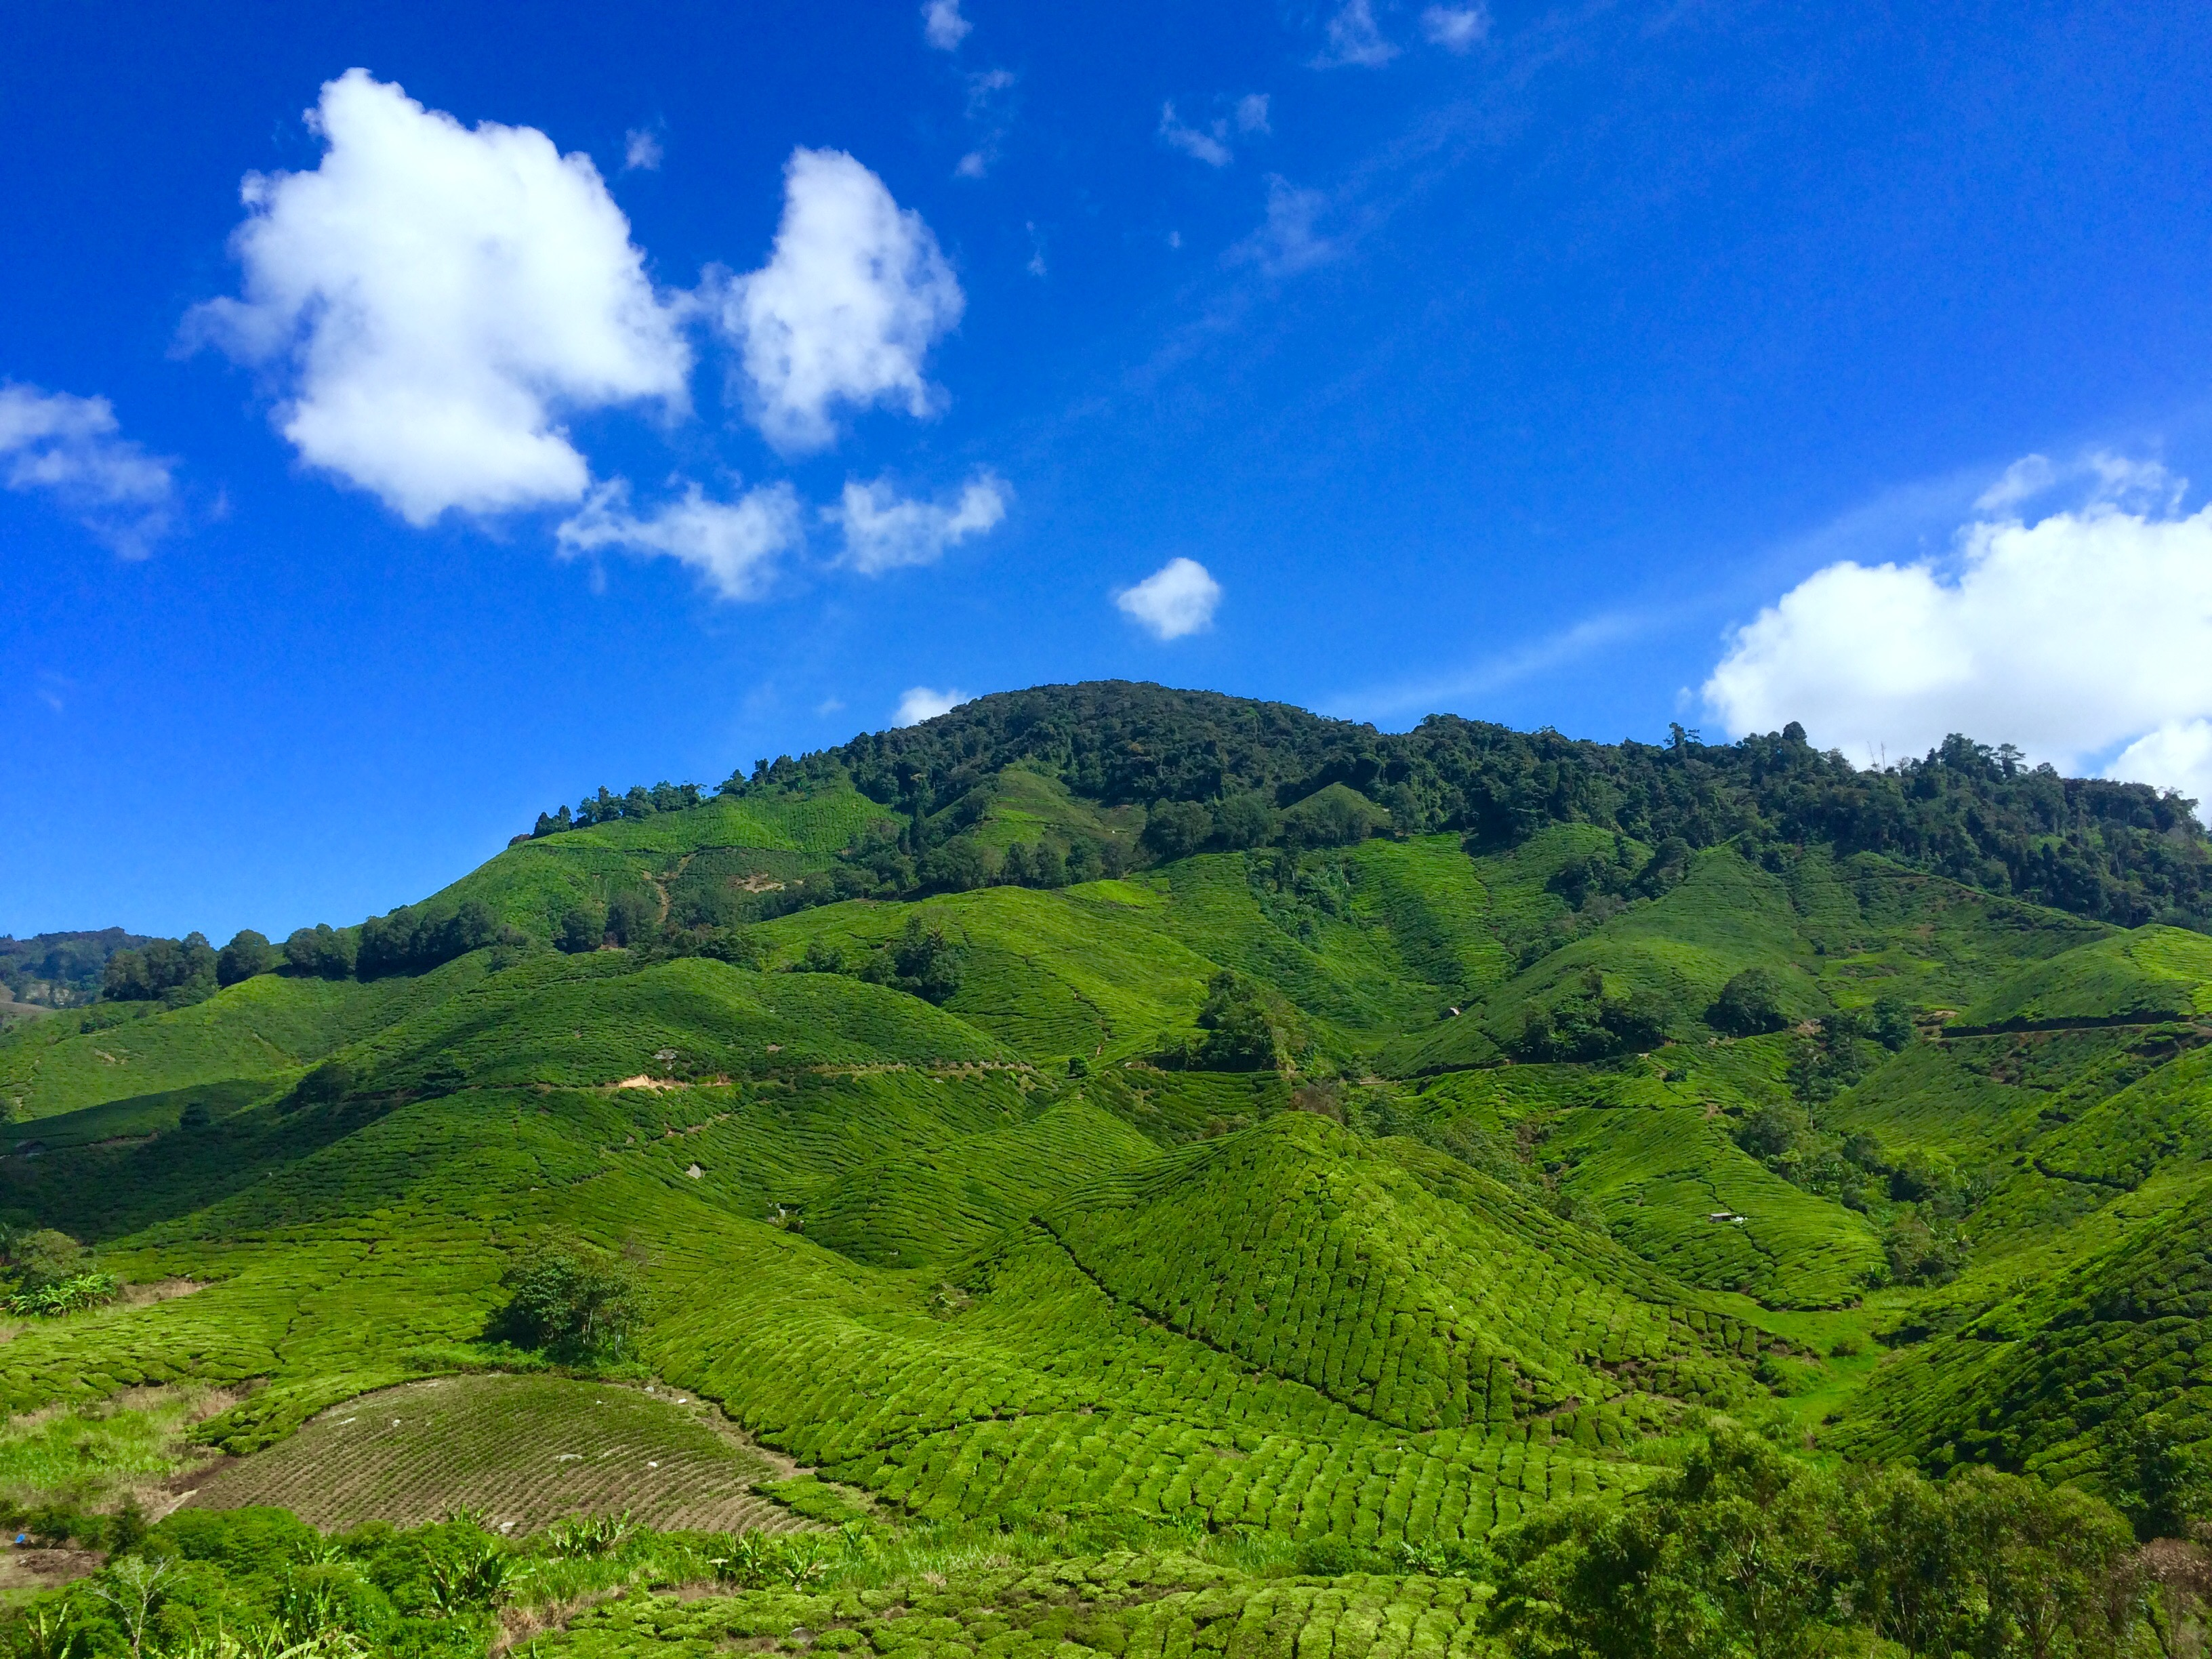 Apple Iphone X Wallpaper From Commercial Landscape Photography Of Green Hill Under Blue Sky And